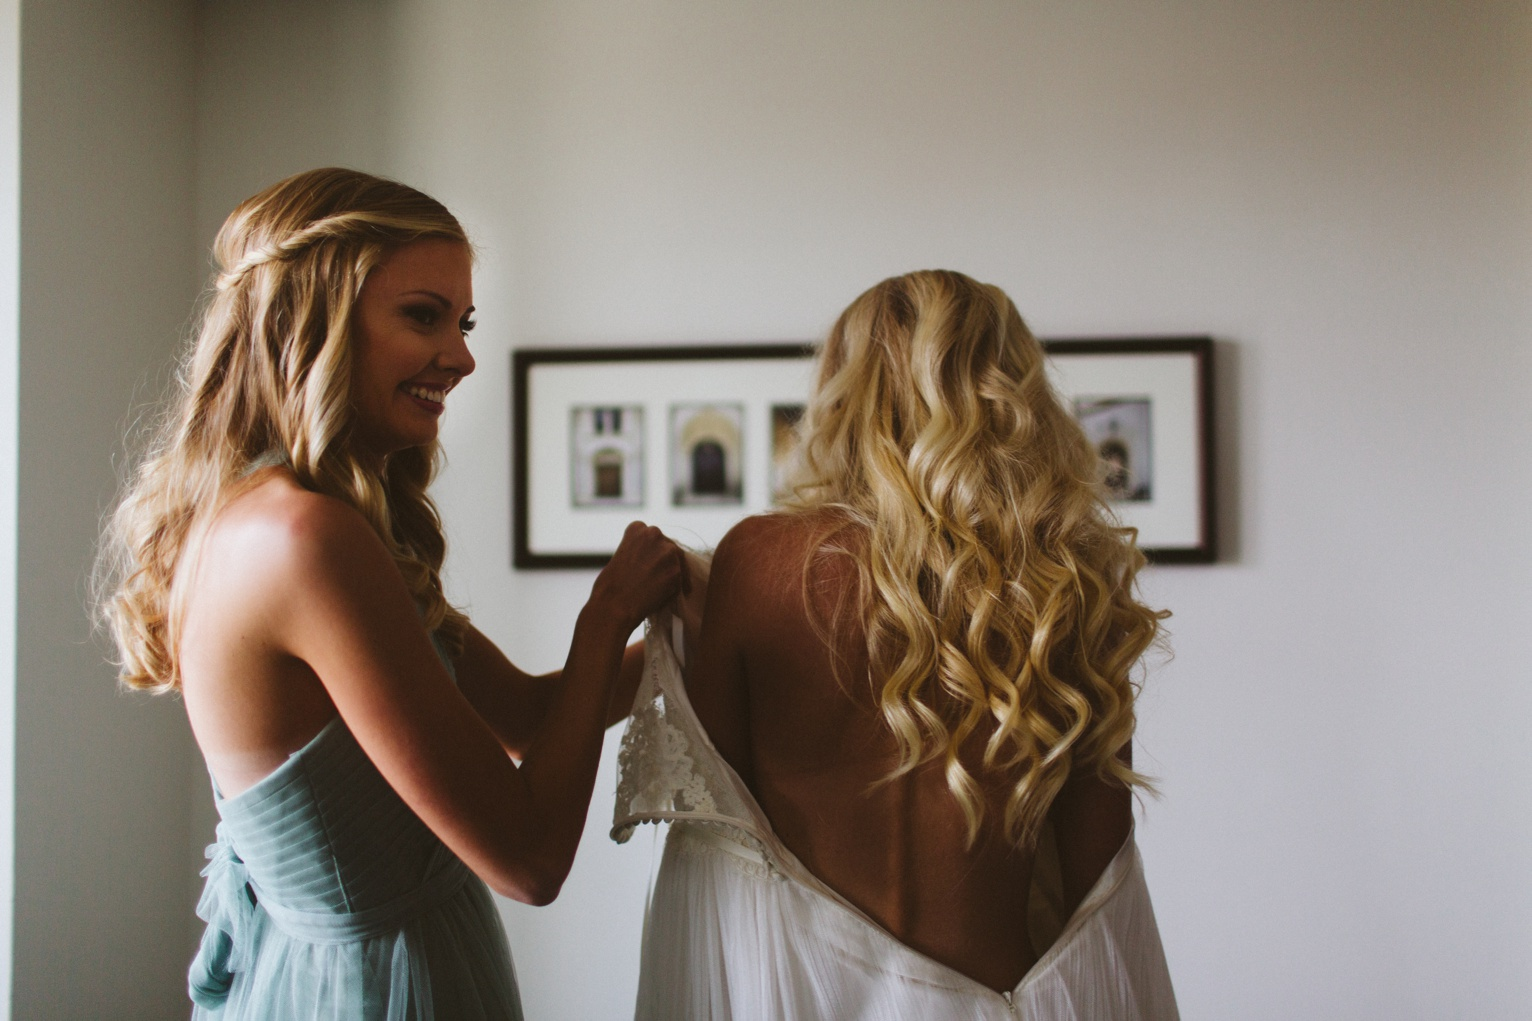 Dreamtownco.com_blog_Jordan&Lindsey_Wedding__0053.jpg